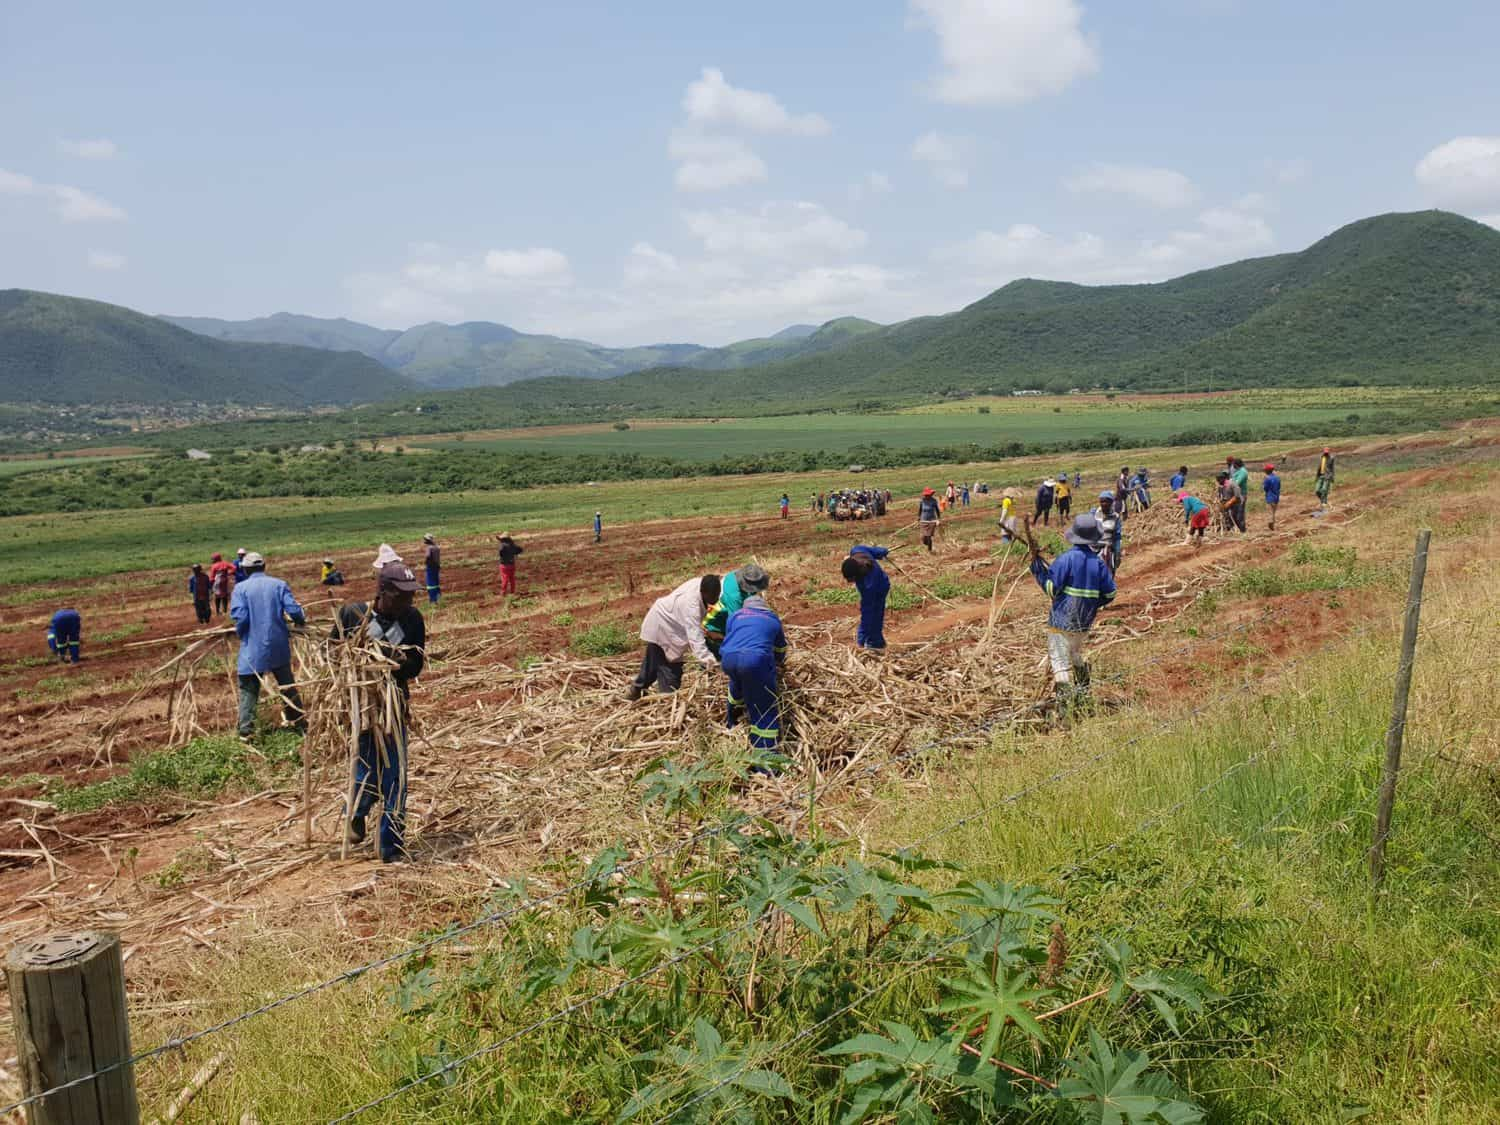 Cane farmers provide much needed employment opportunities in deep rural areas. If the import trend continues it could result in huge job losses.